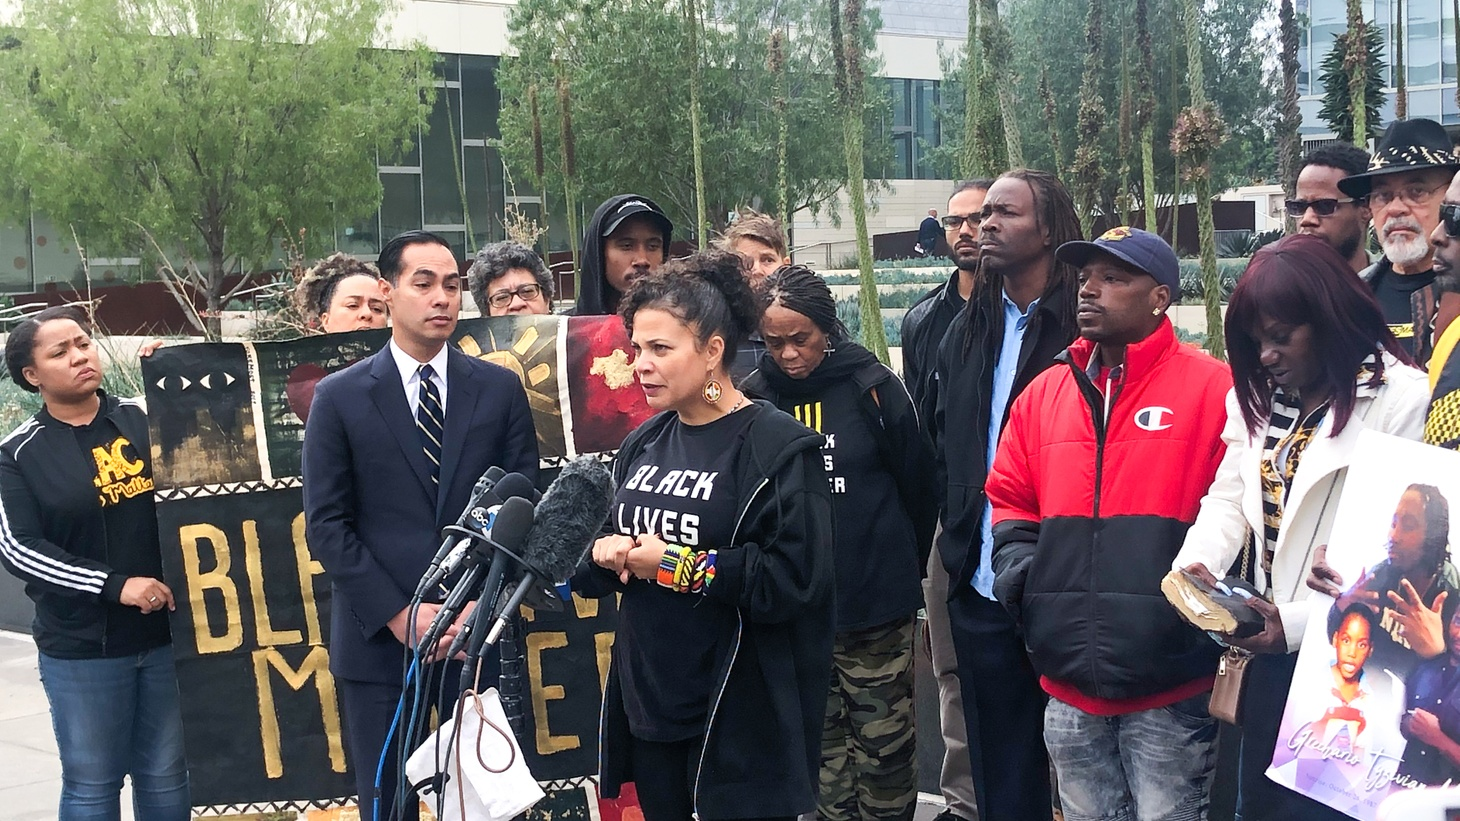 Democractic presidential hopeful Julian Castro joins Black Lives Matter co-founder Melina Abdullah and others in calling for two LAPD officers to be fired in the police shooting of Grechario Mack, 30.